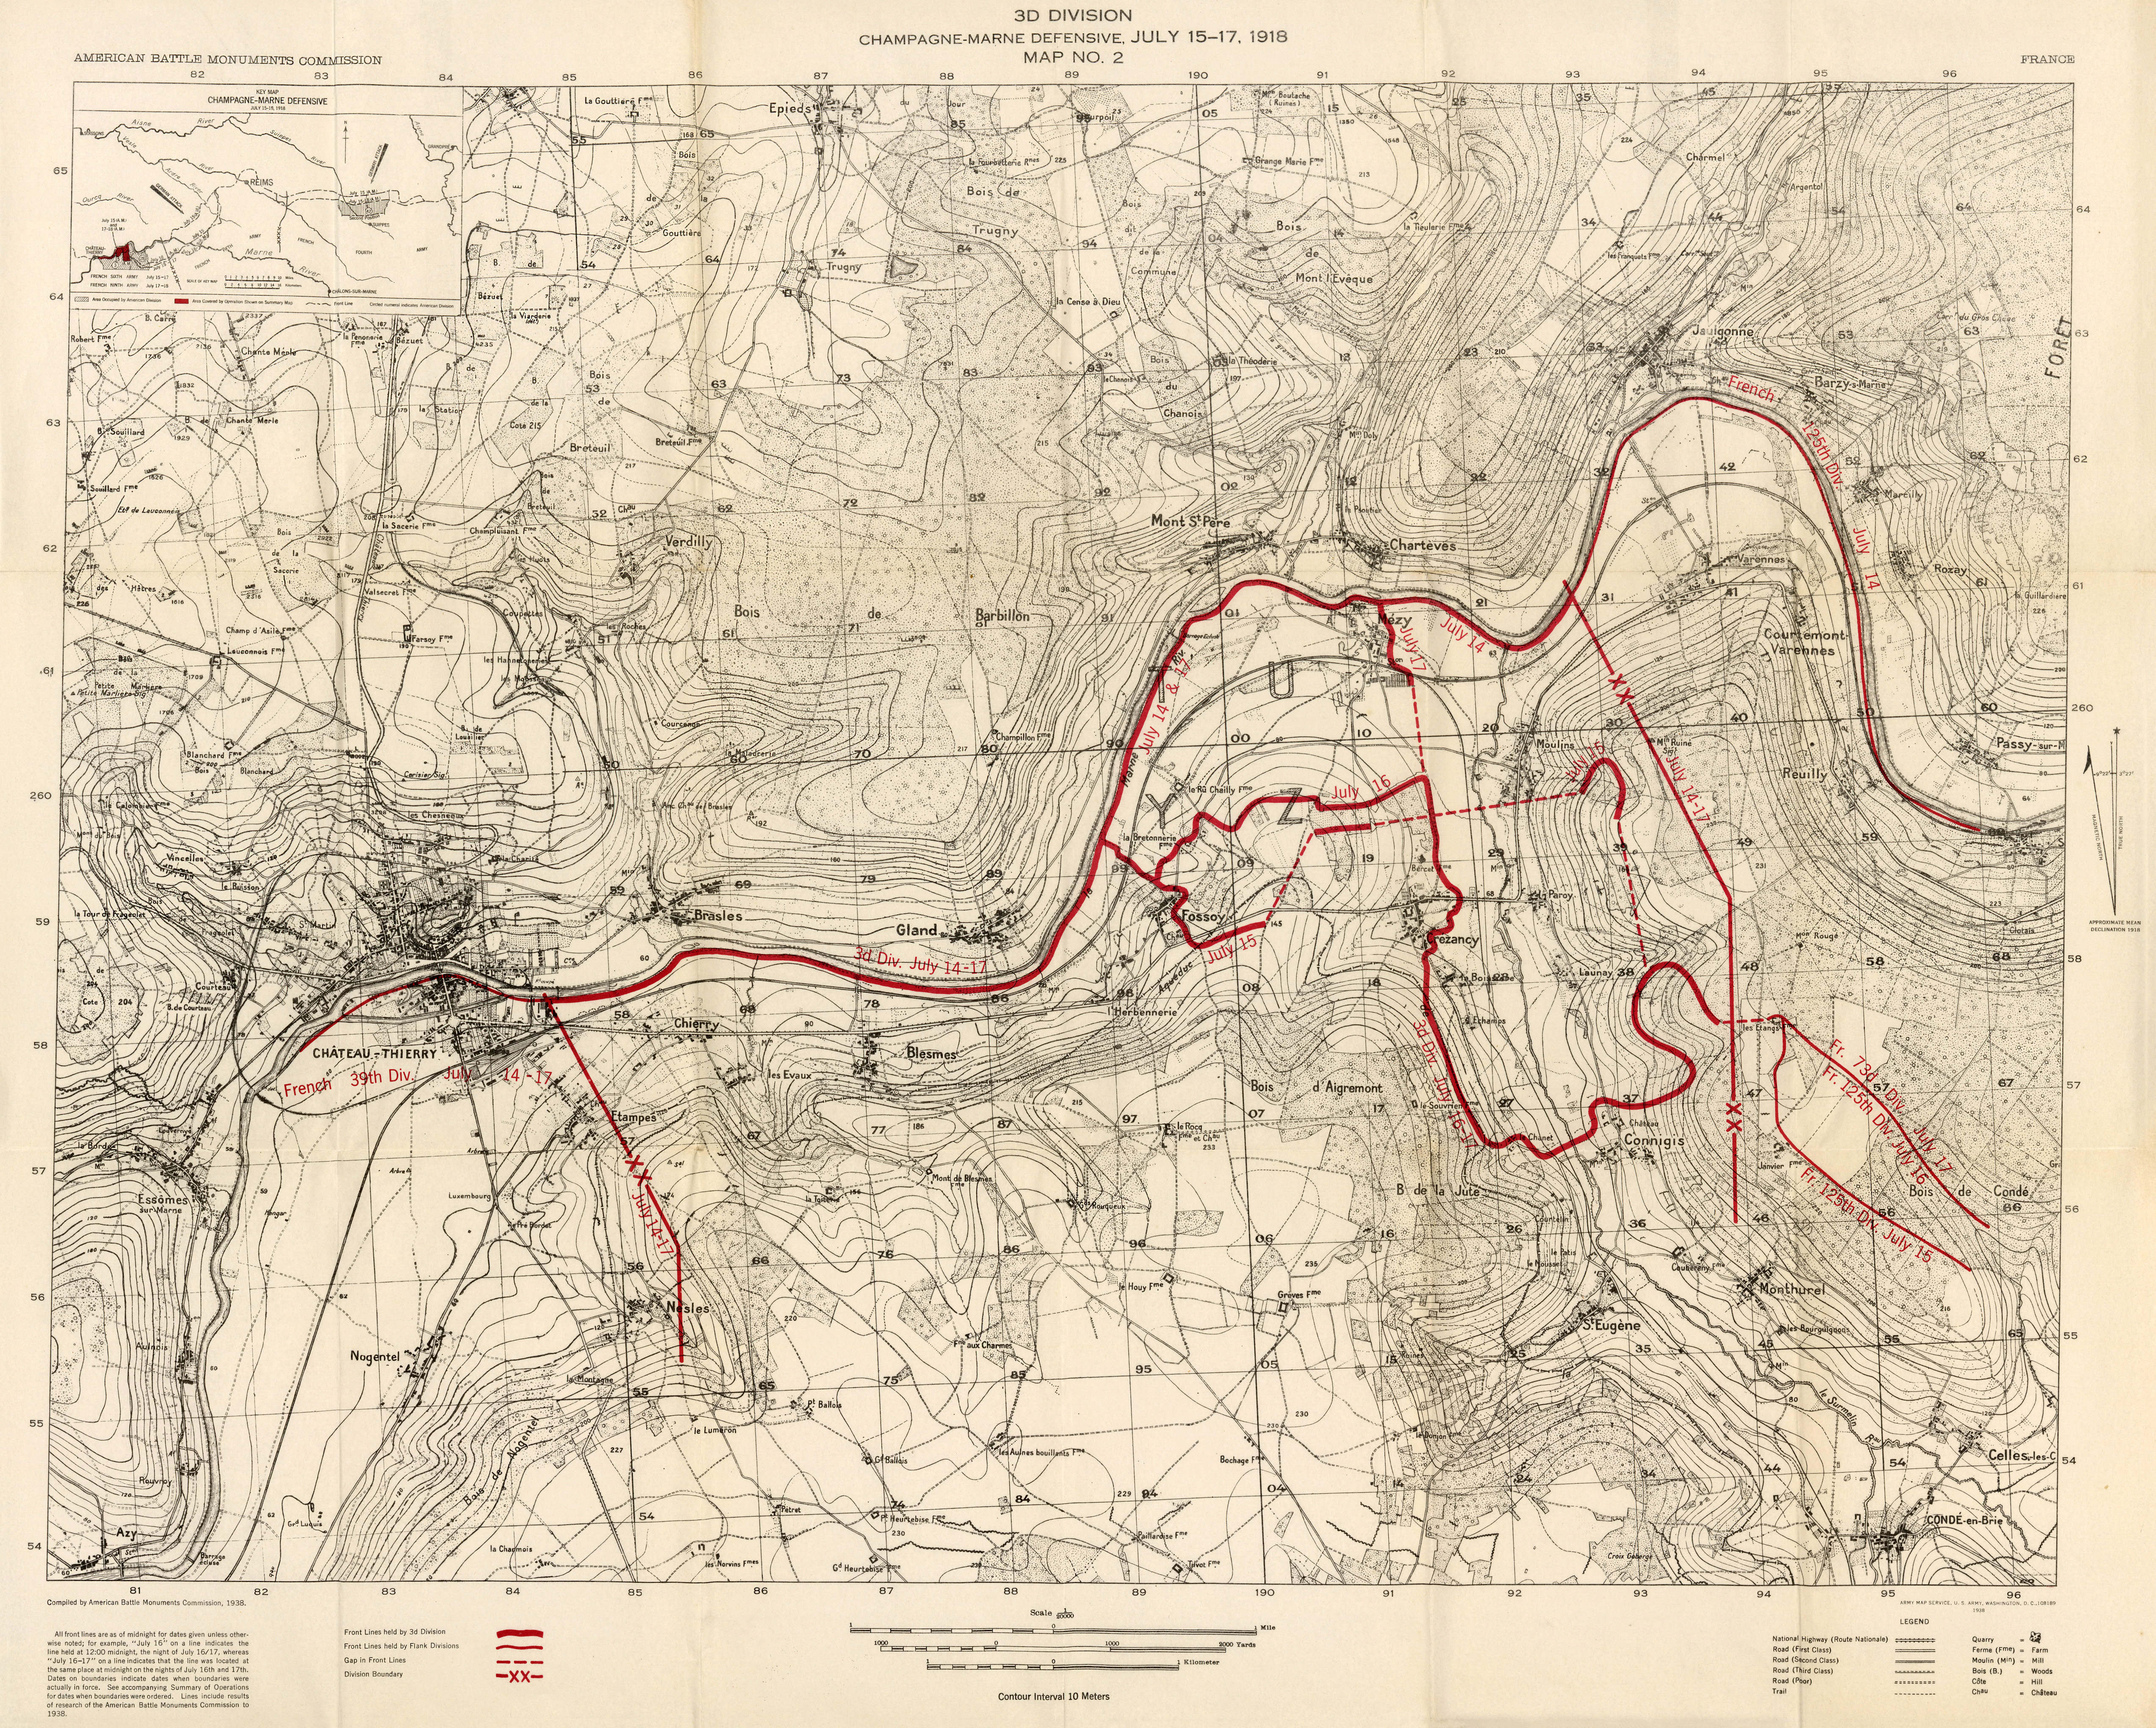 Summary of operations in the world war perry casta eda for Champagne marne